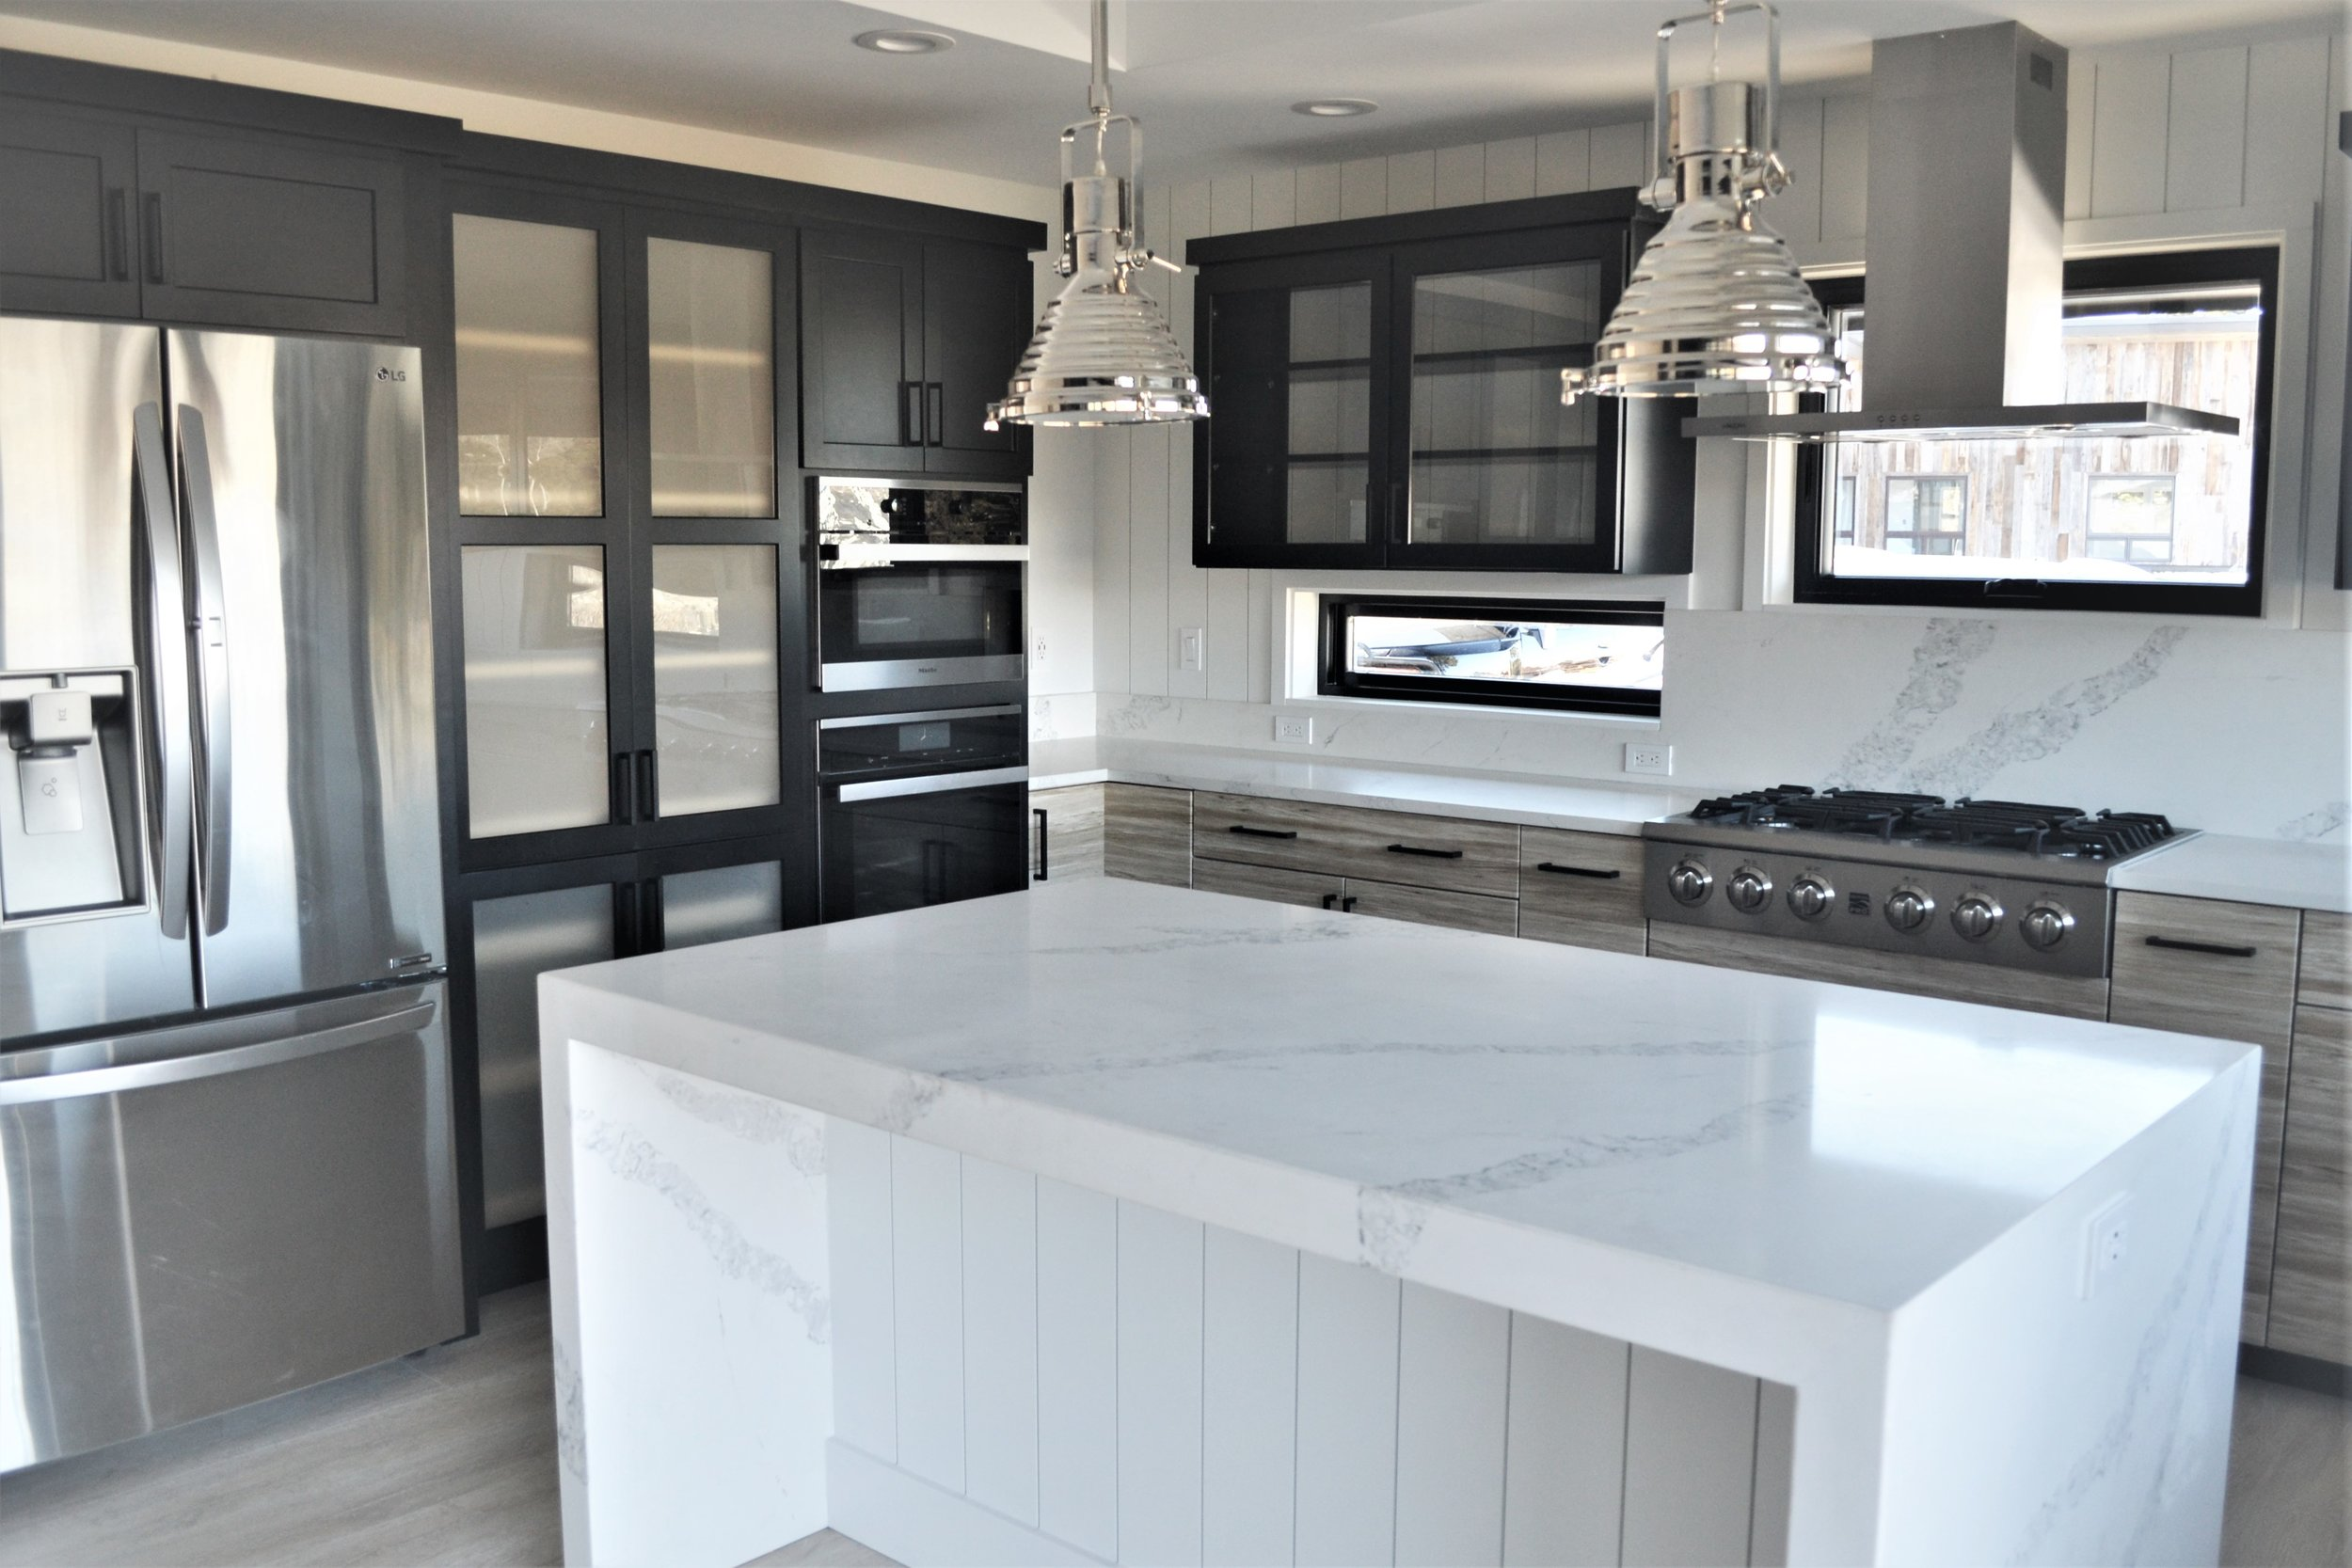 Modern white and stainless kitchen.JPG